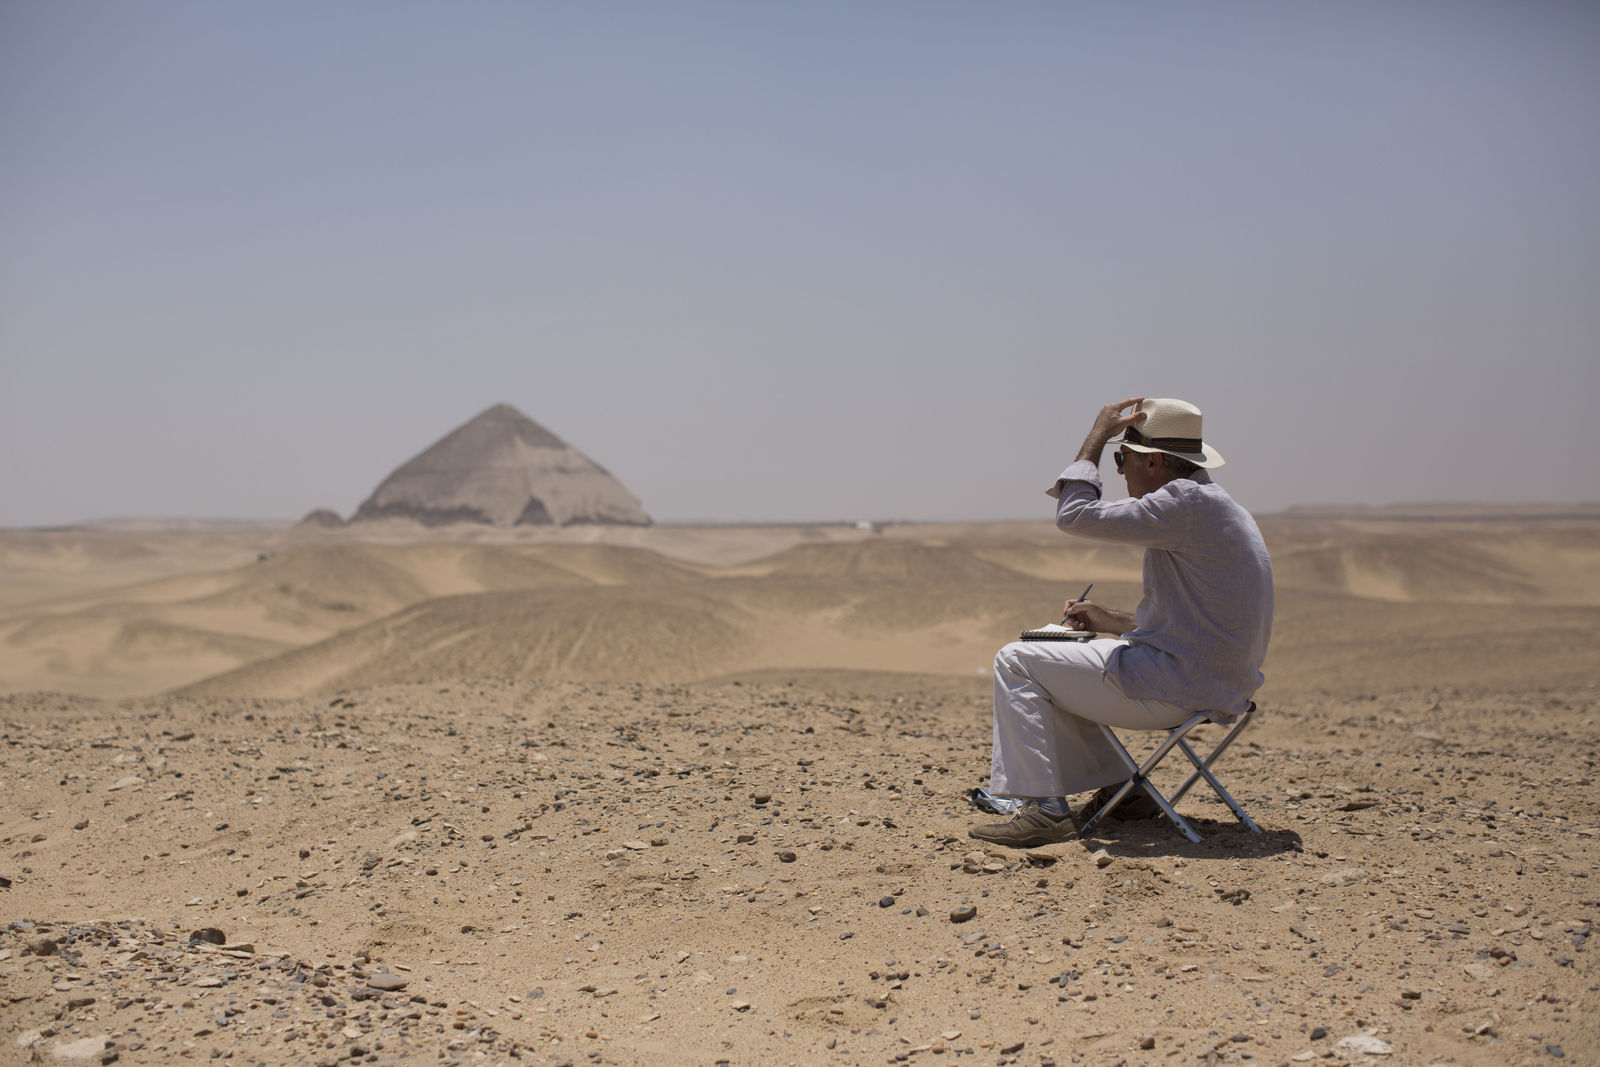 A member of an international delegation sketches the site of the Bent Pyramid during an event opening the pyramid and its satellites for visitors in Dashur, Egypt, Saturday, July 13, 2019. (AP Photo/Maya Alleruzzo)